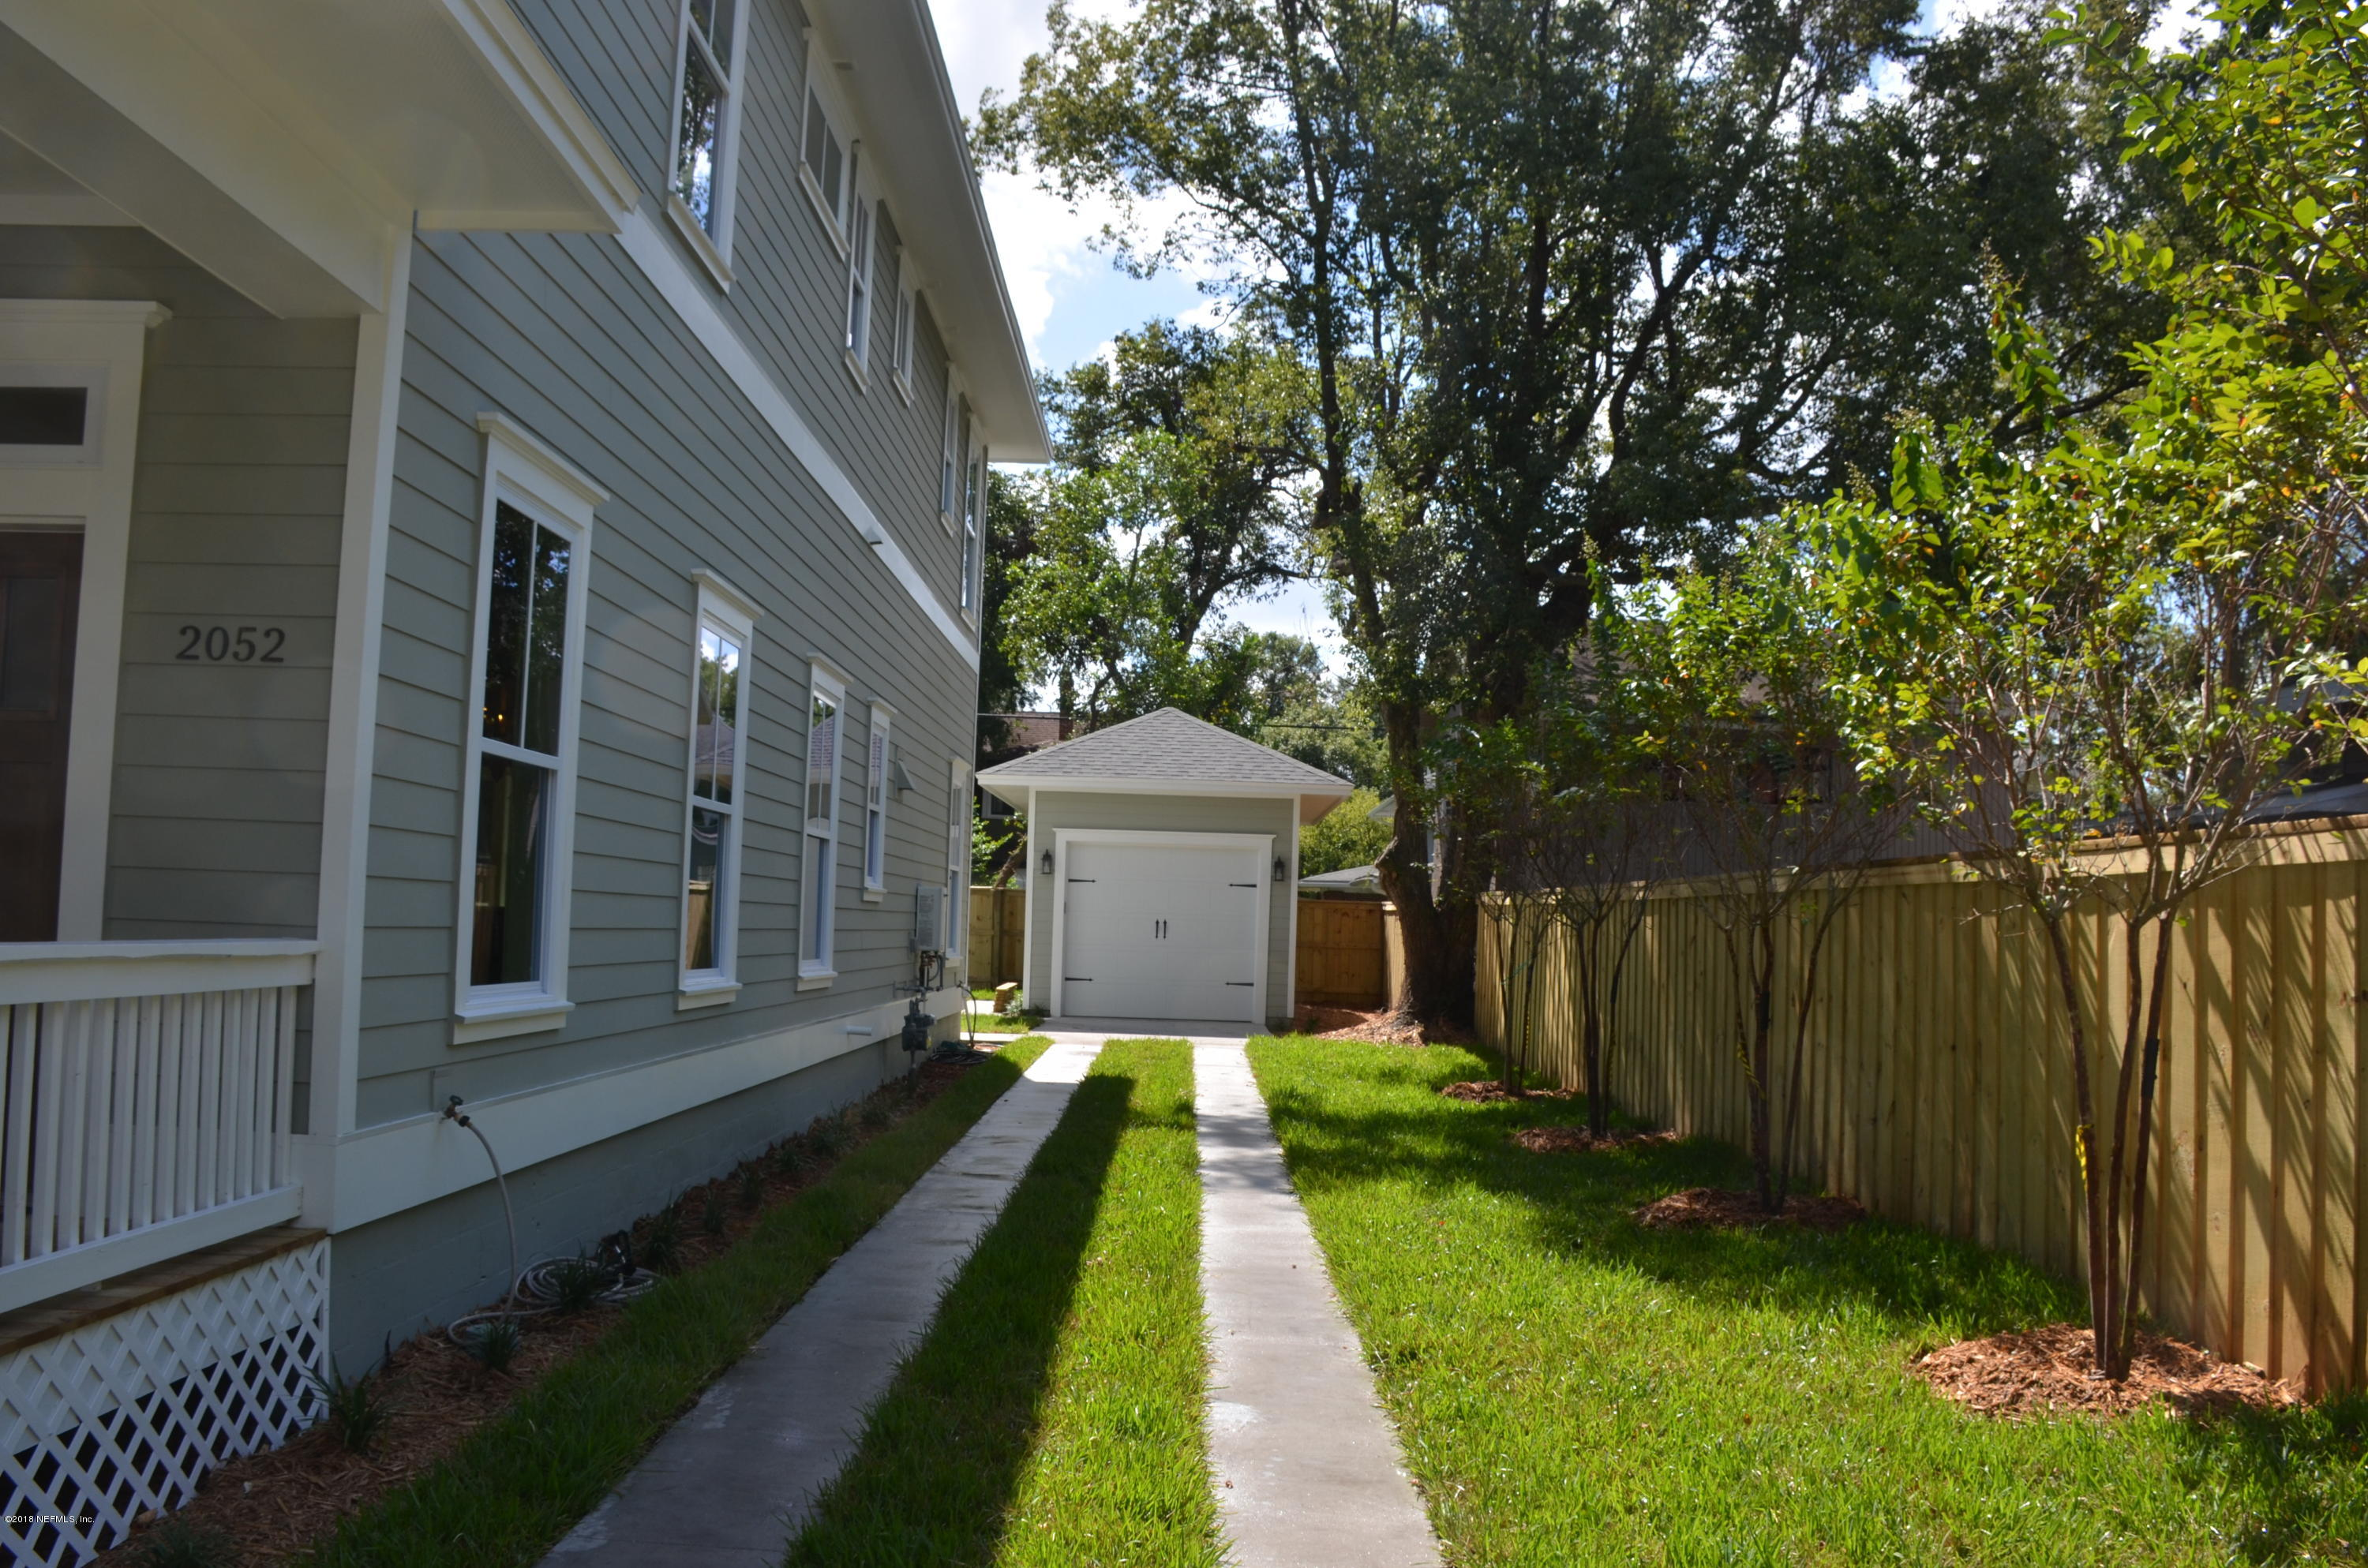 2052 ERNEST, JACKSONVILLE, FLORIDA 32204, 4 Bedrooms Bedrooms, ,3 BathroomsBathrooms,Residential - single family,For sale,ERNEST,946594